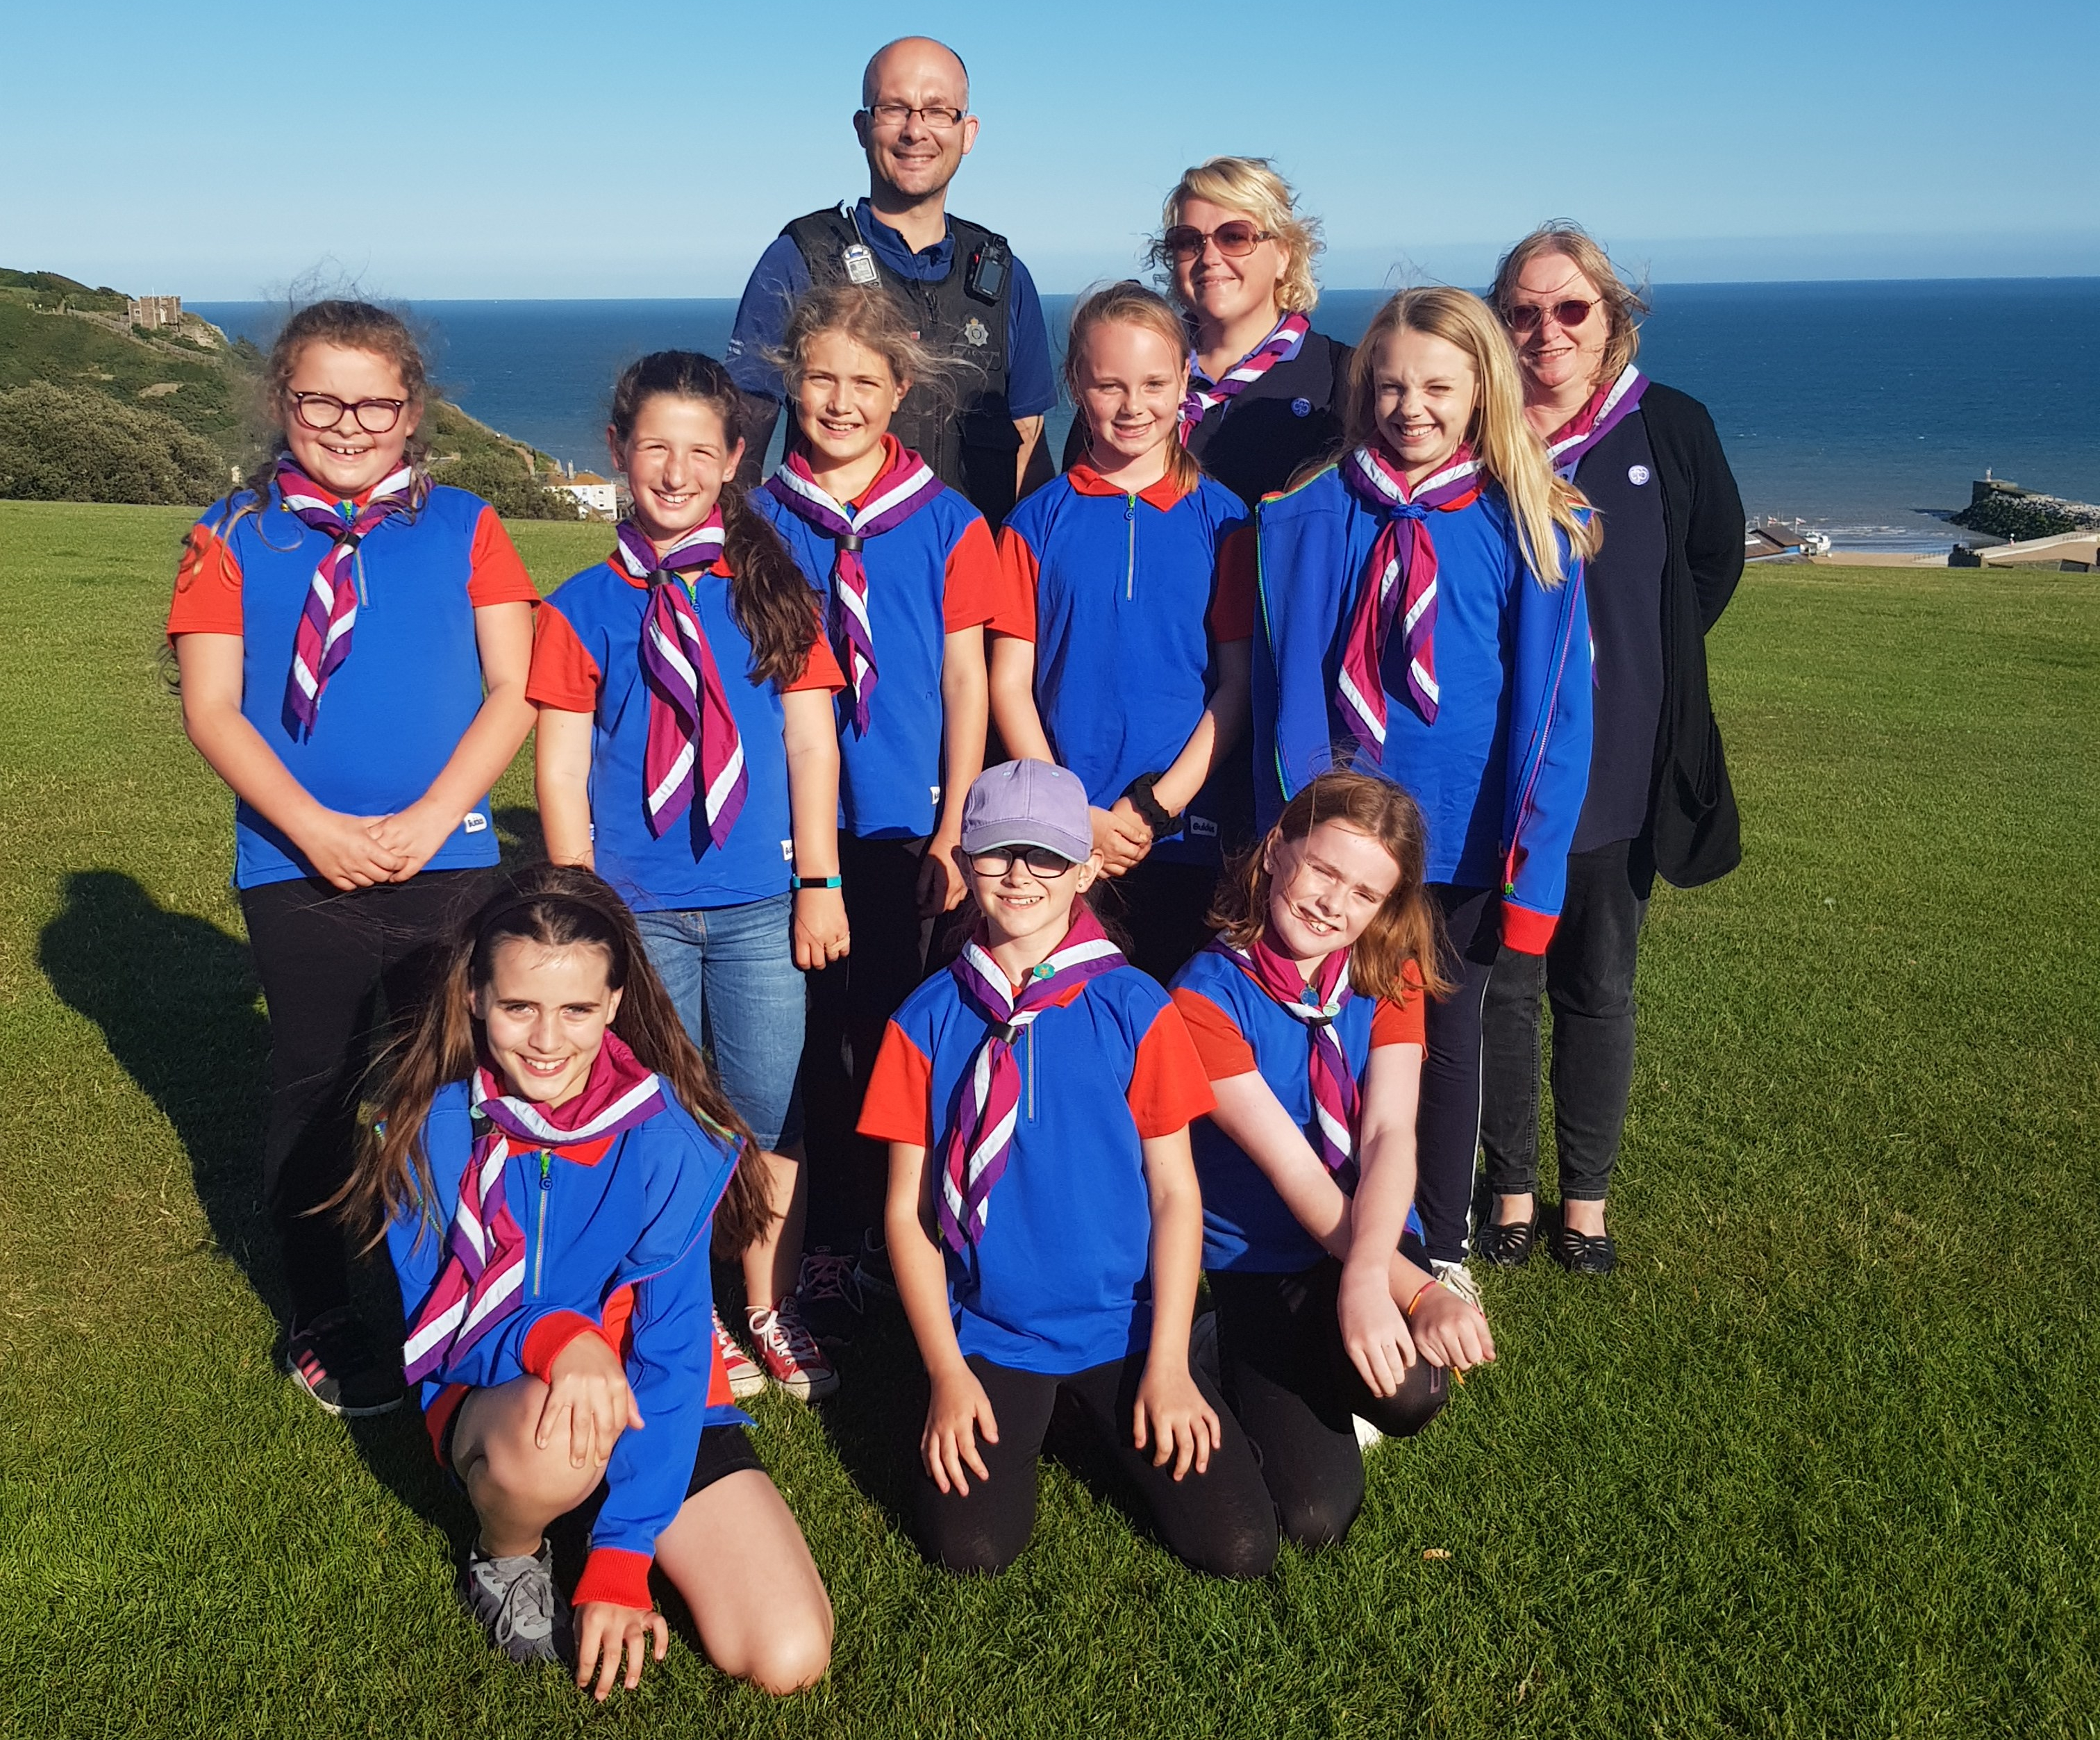 Cash boost for local Guides troop